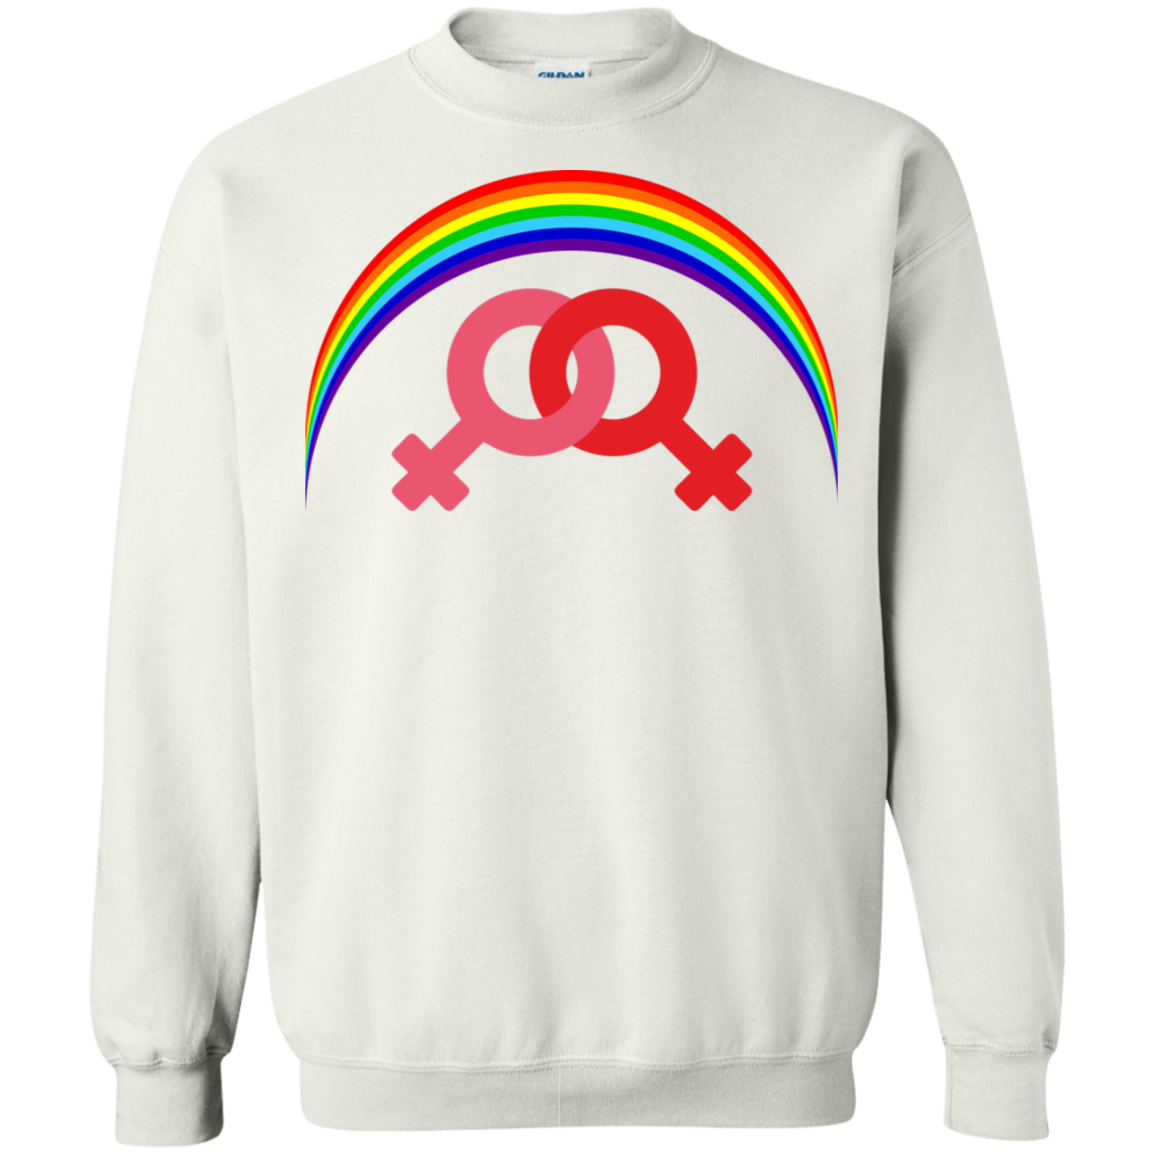 G180 Gildan Crewneck Pullover Sweatshirt  8 oz. / Rainbow Collection Marraige Equality Women